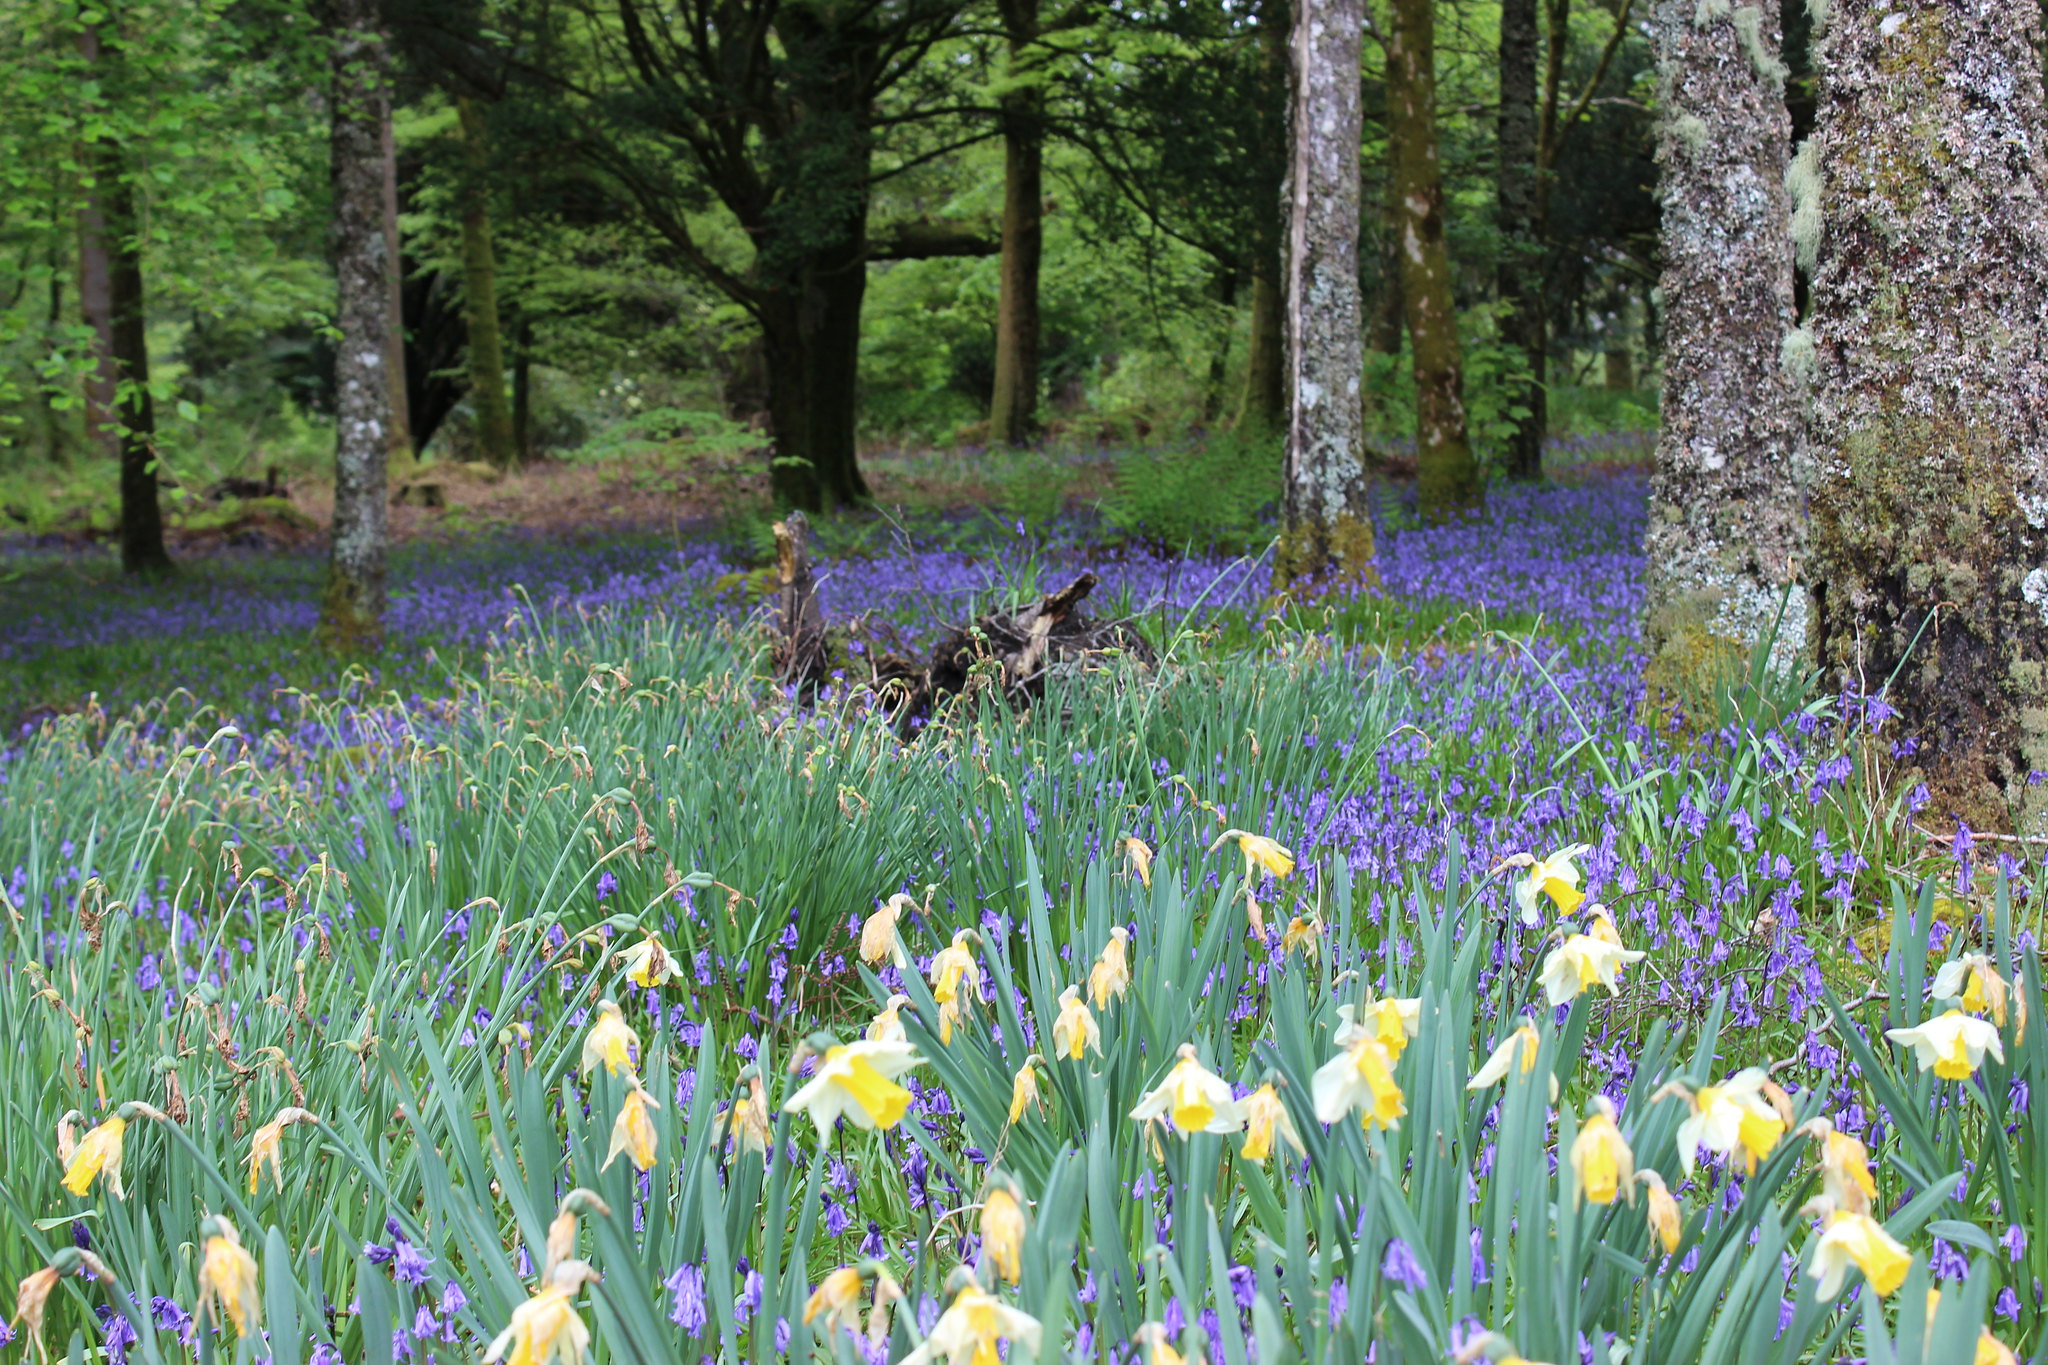 Image of a woodland in the spring with a carpet of bluebells and daffodils.